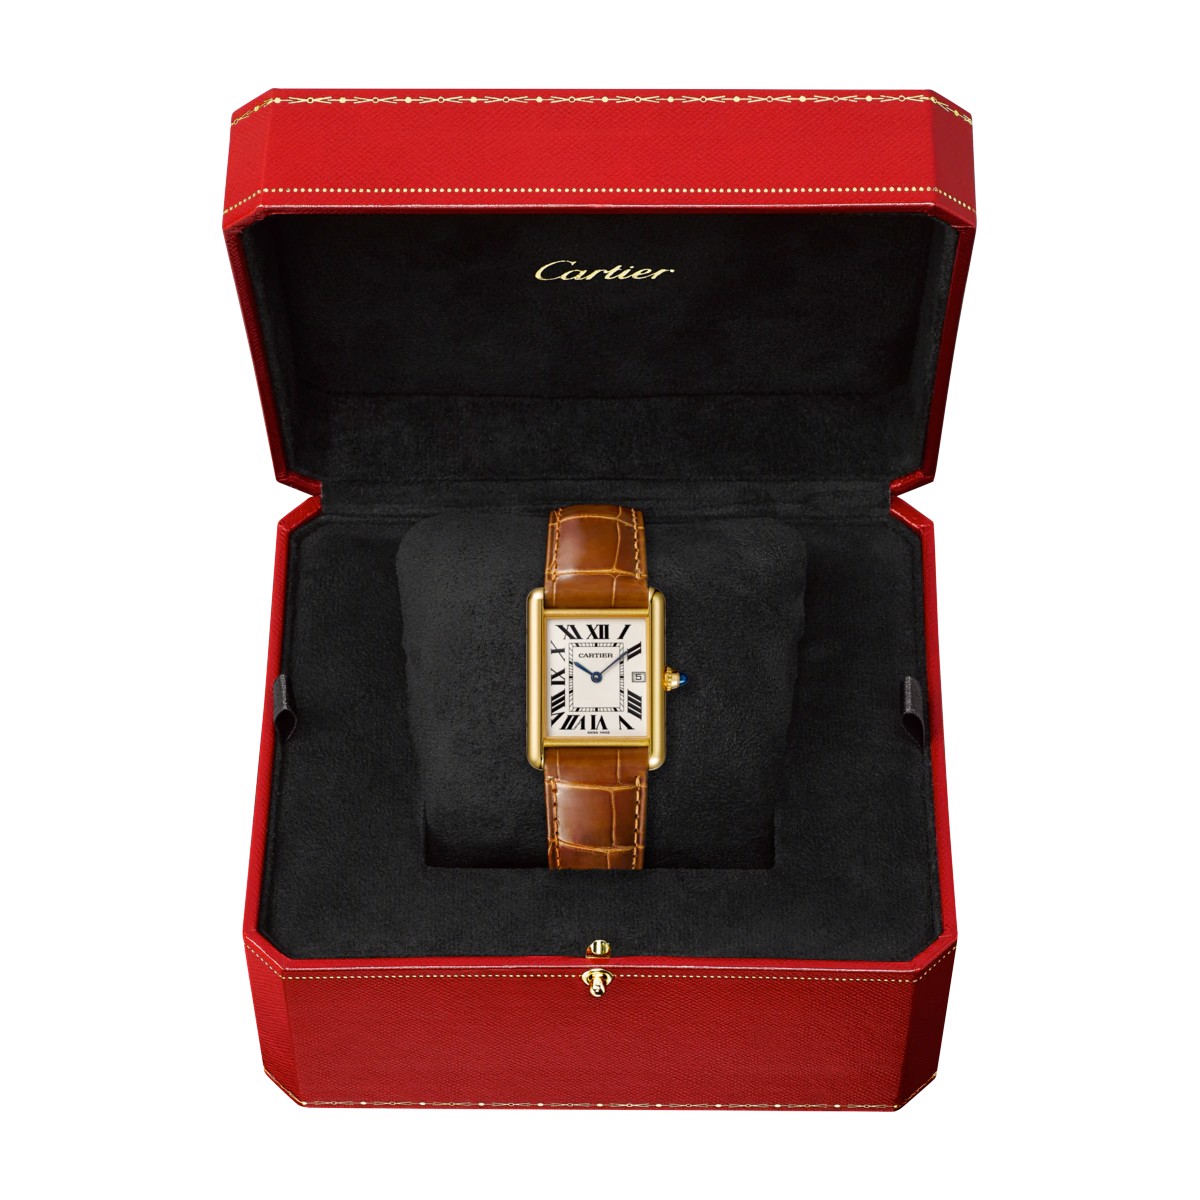 Cartier Tank Louis Cartier Large Model Yellow Gold Leather Sapphire